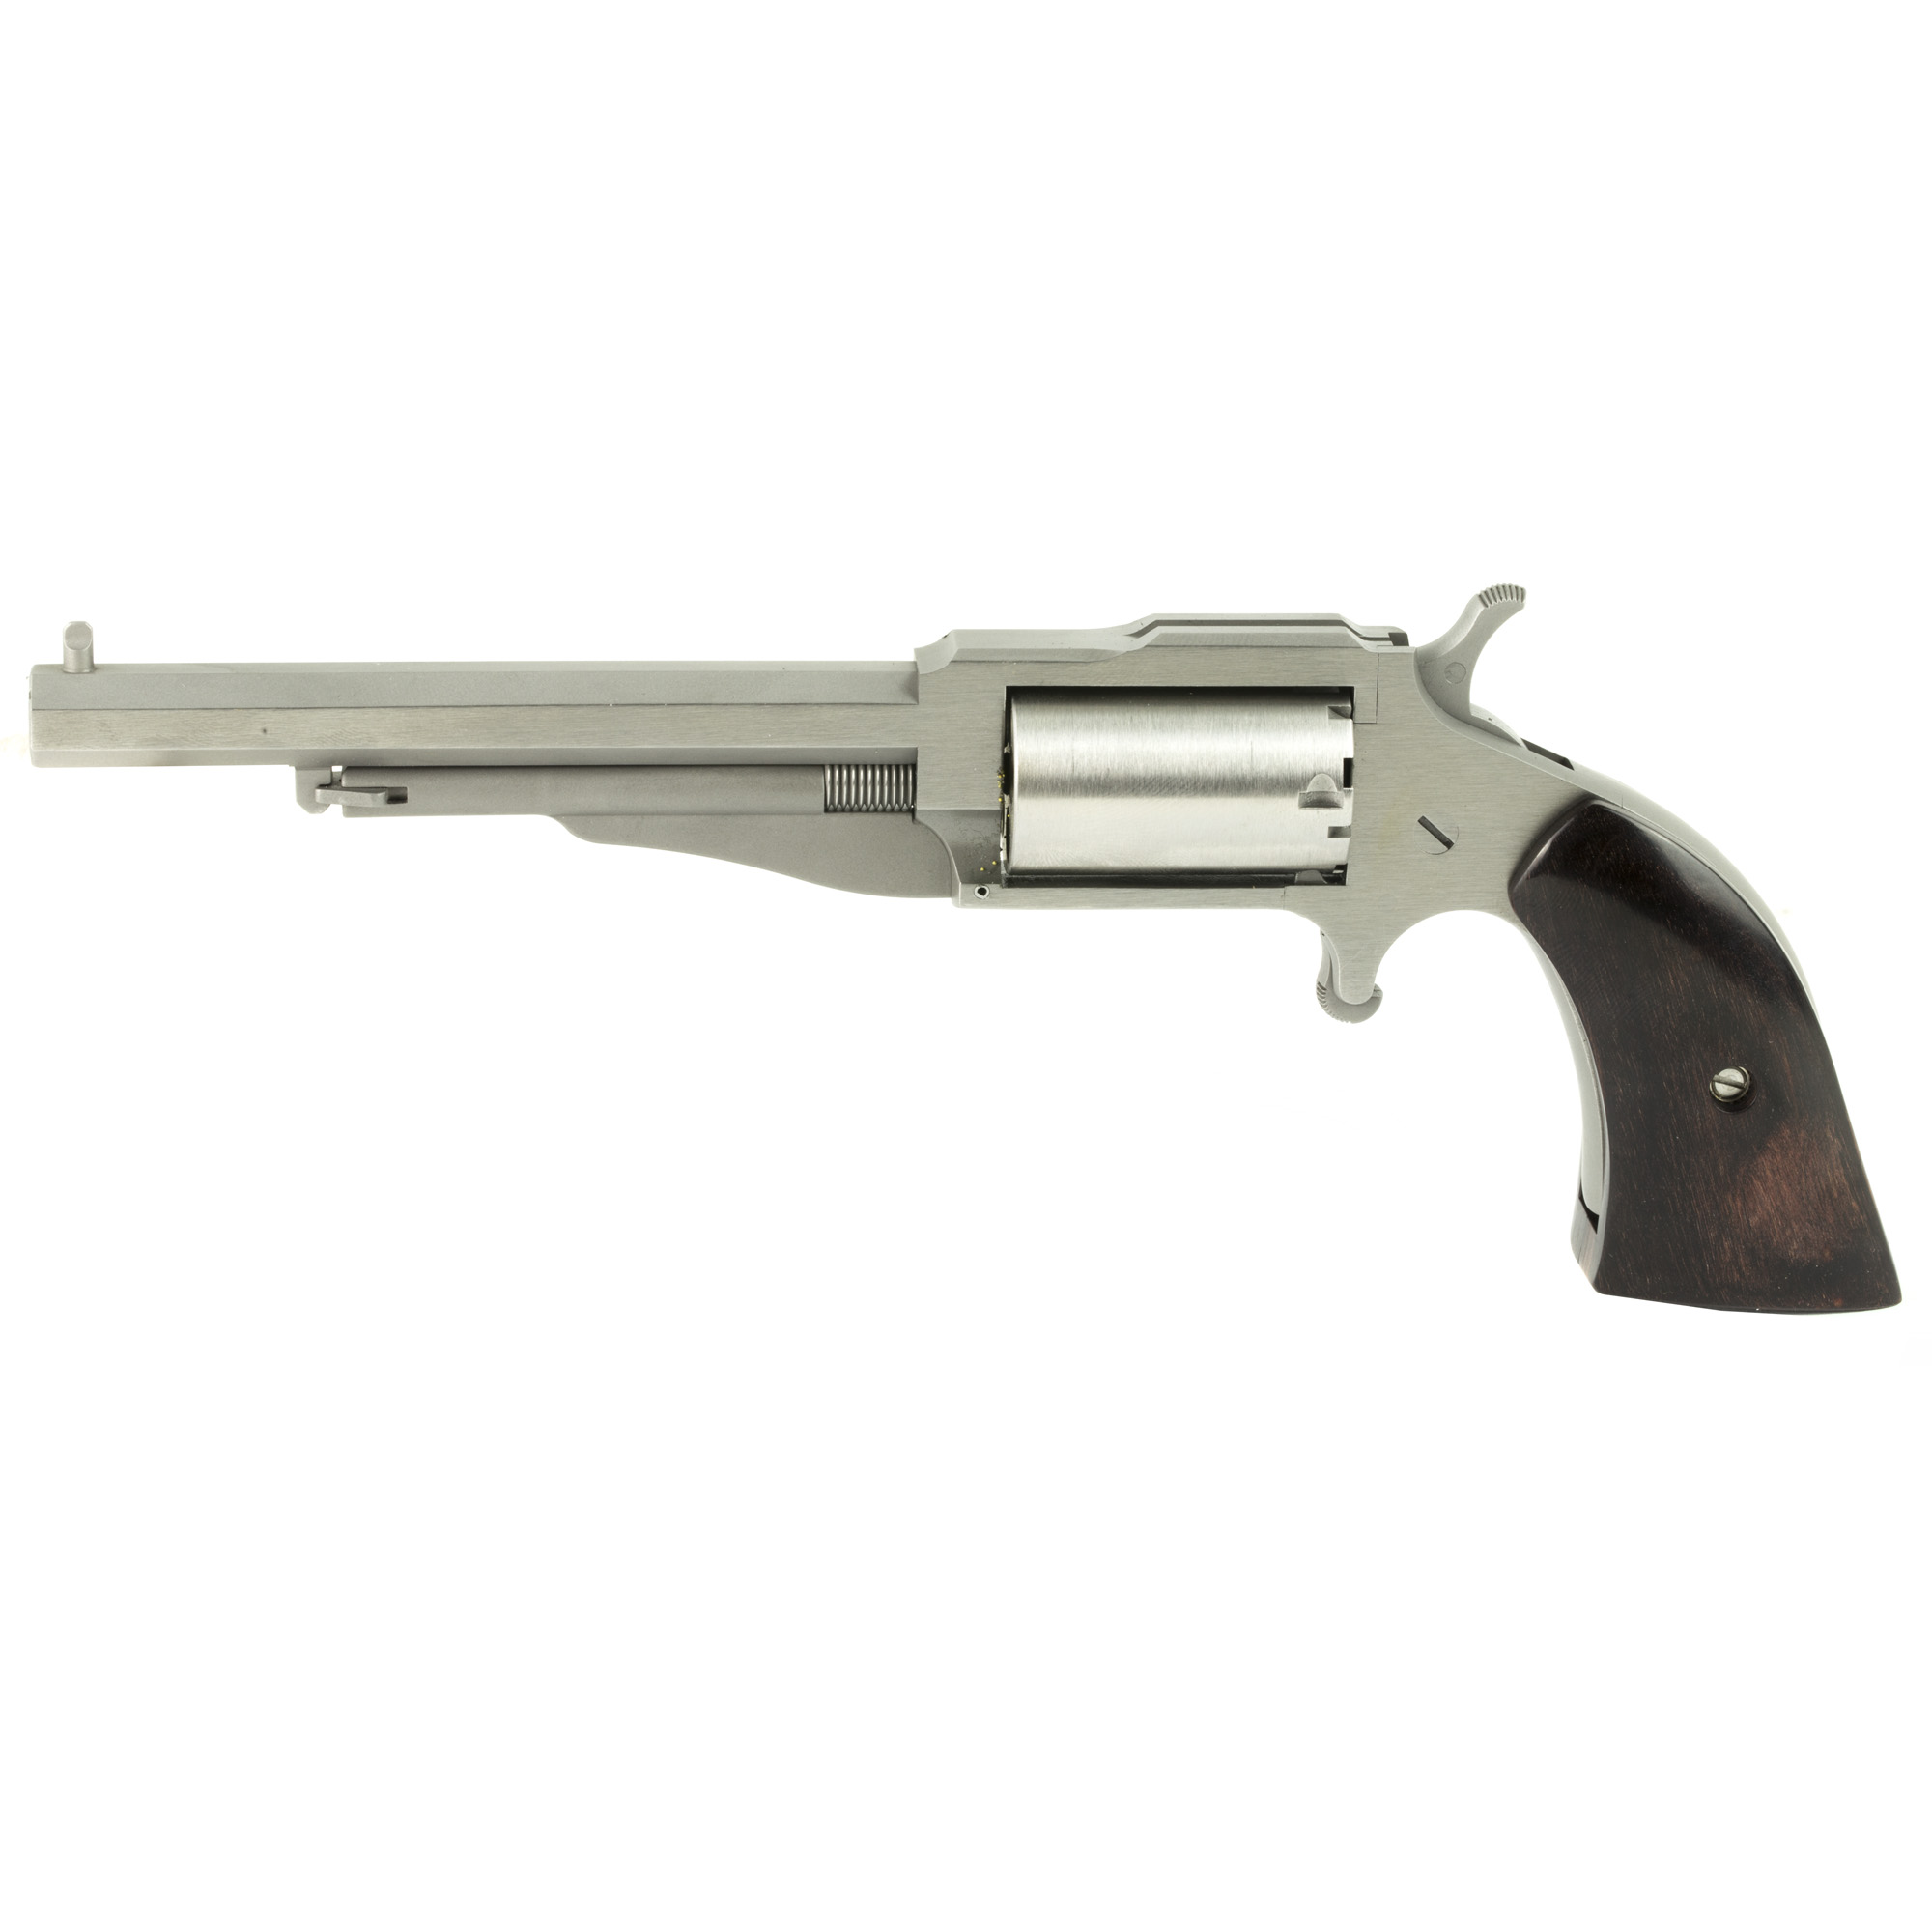 """The Earl"" is a five-shot"" single action"" 1860's- styled mini- revolver chambered in 22 magnum. Named after the NAA gunsmith who originally developed the product"" with its faux loading lever (which secures the cylinder pin)"" ""The Earl"" resembles a 150-year-old percussion revolver then common in the Old West. With its heavy octagonal barrel"" top strap channel and bead front sight"" ""The Earl"" could become your favorite plinker (pray for the snake"" rodent"" or tin can that dares cross your path!)."